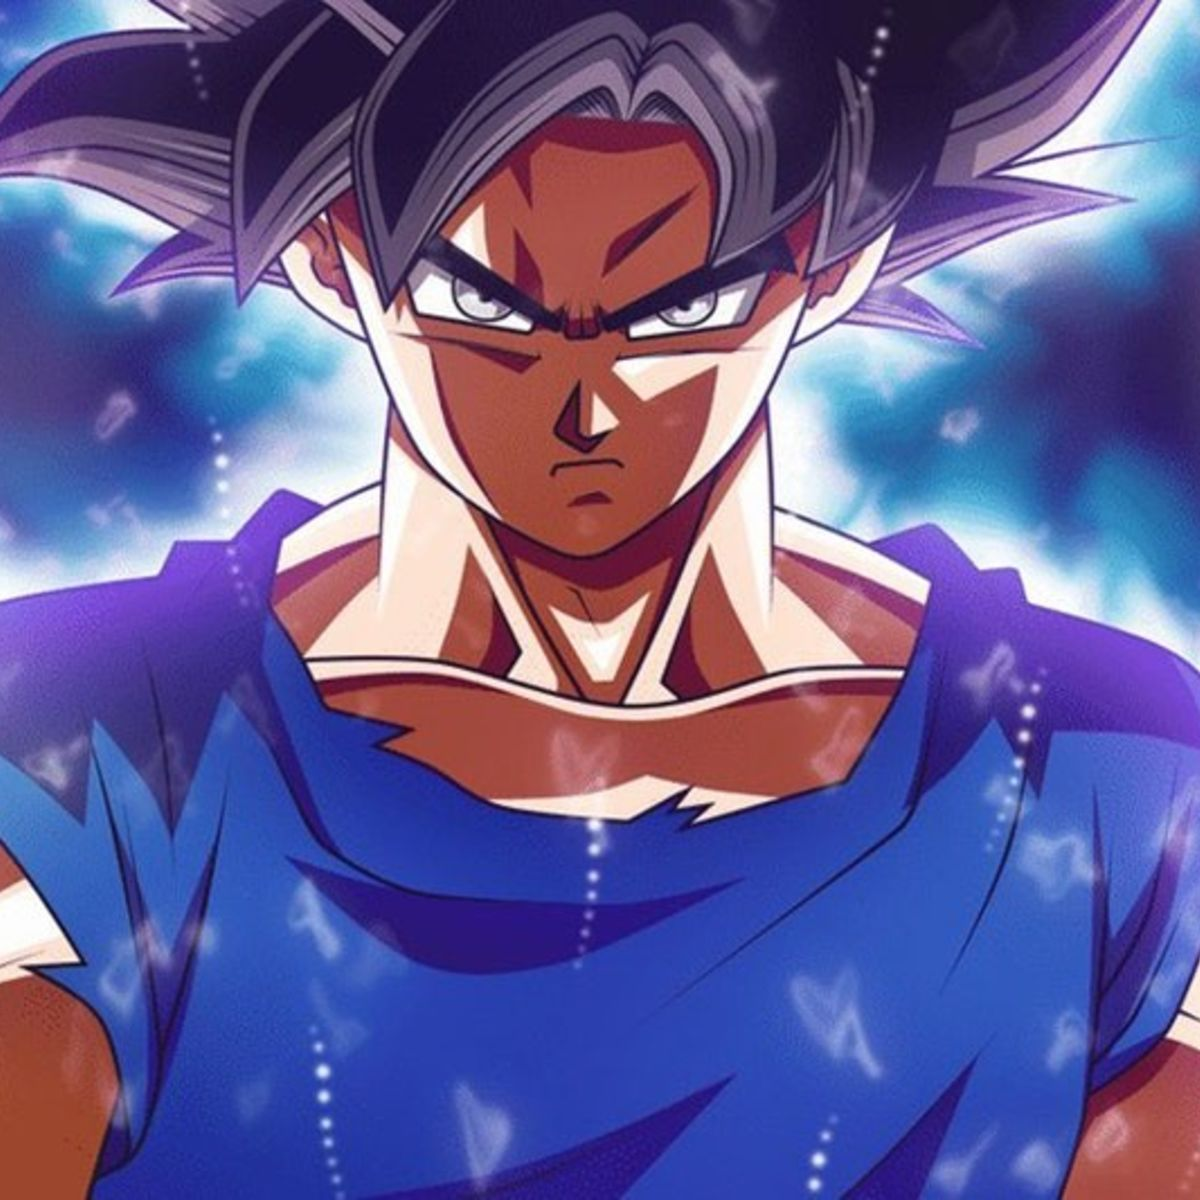 what we know about the future of dragon ball after the super series